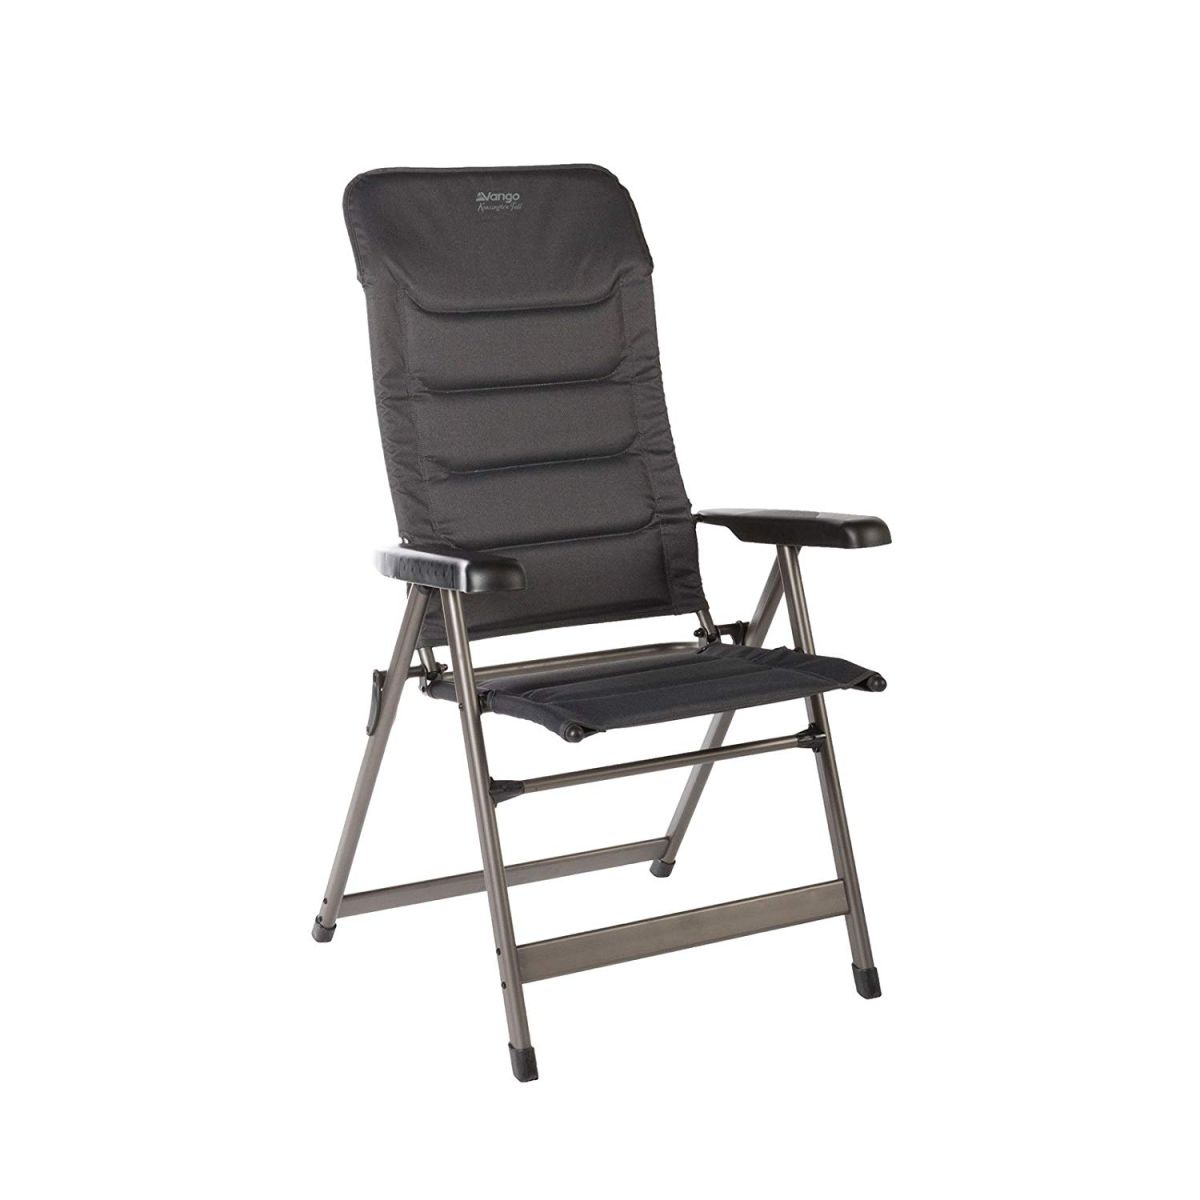 Inflatable Camping Chair Argos   Bruin Blog